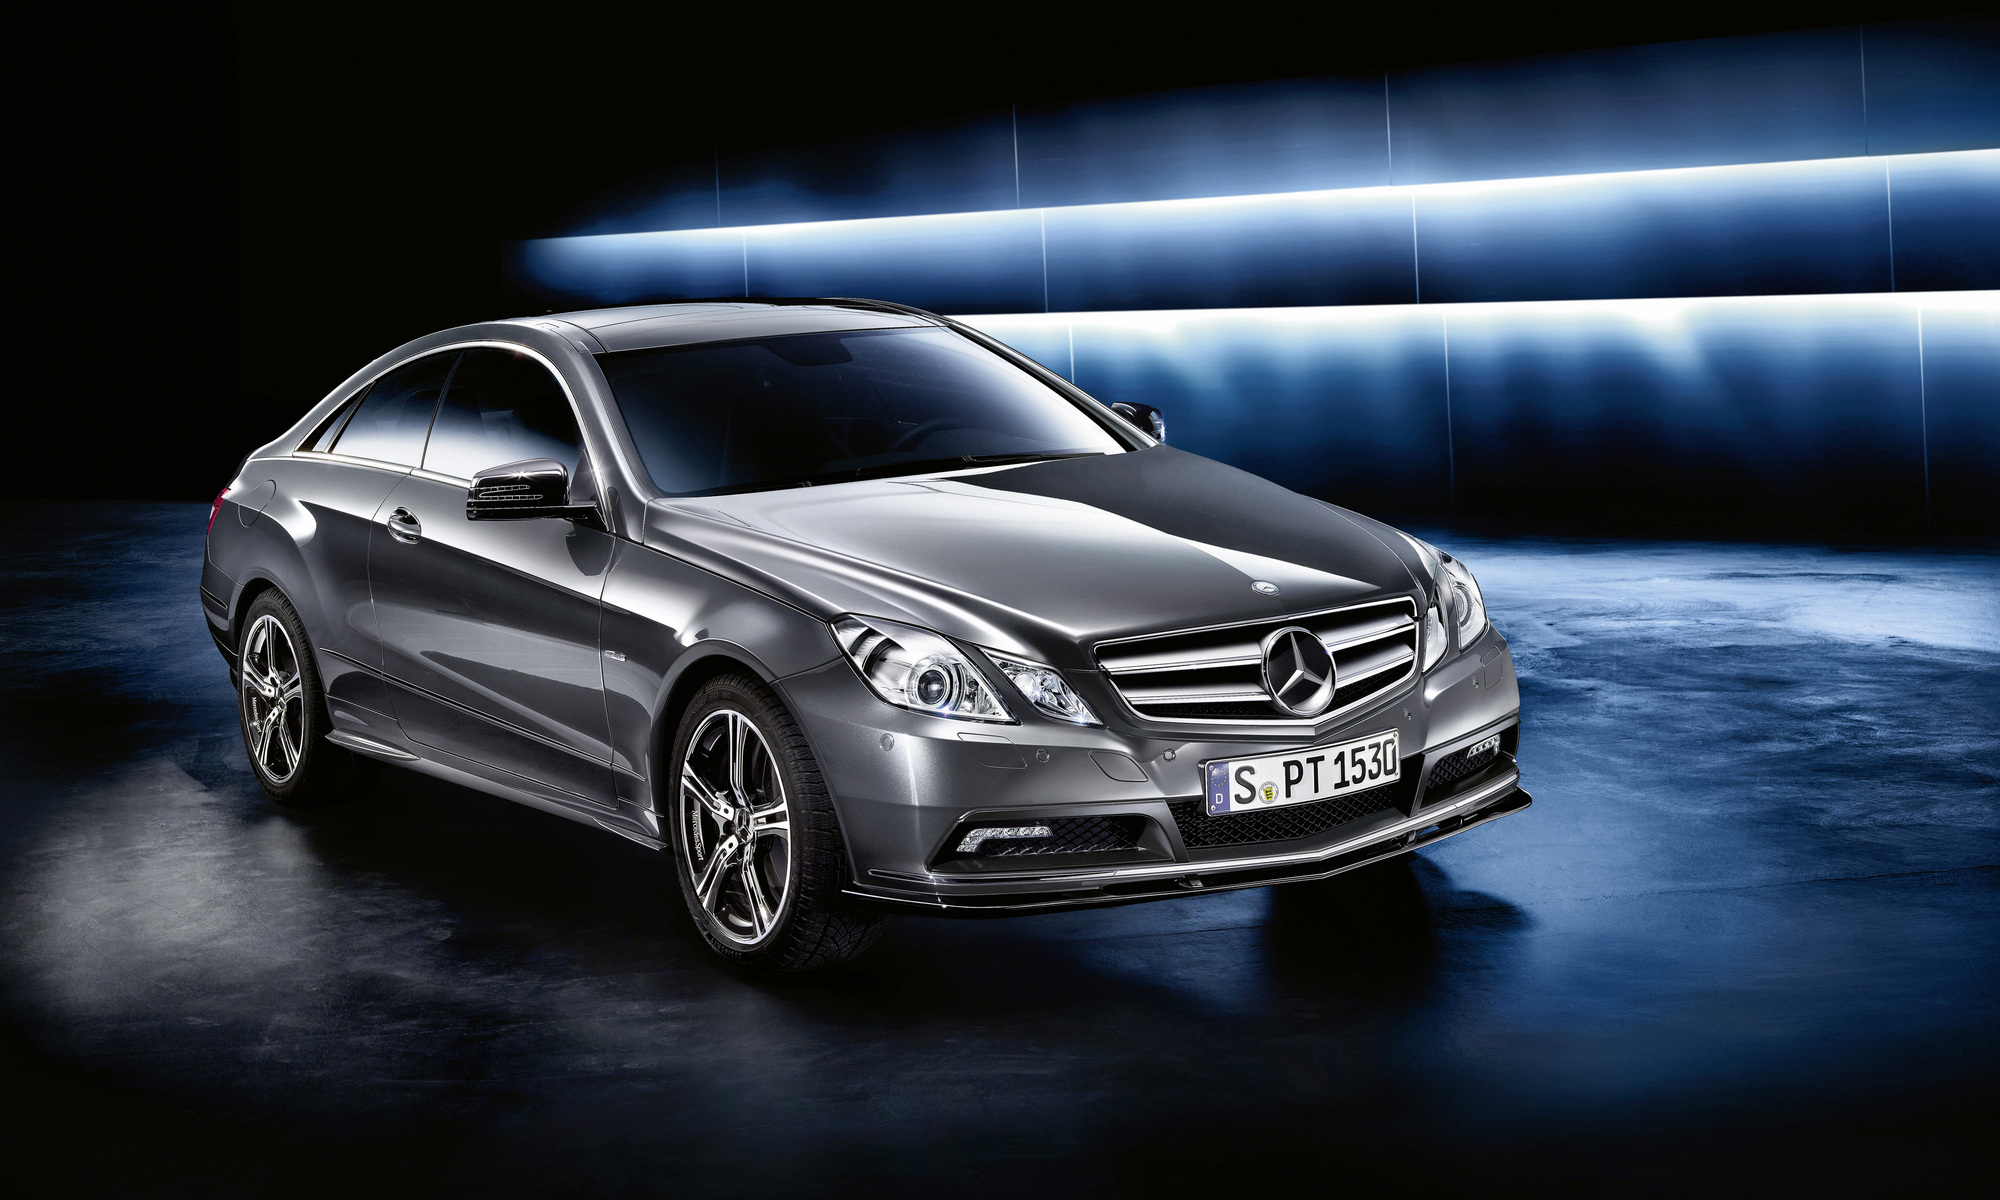 mercedes benz e 200 cgi coup blueefficiency auto. Black Bedroom Furniture Sets. Home Design Ideas